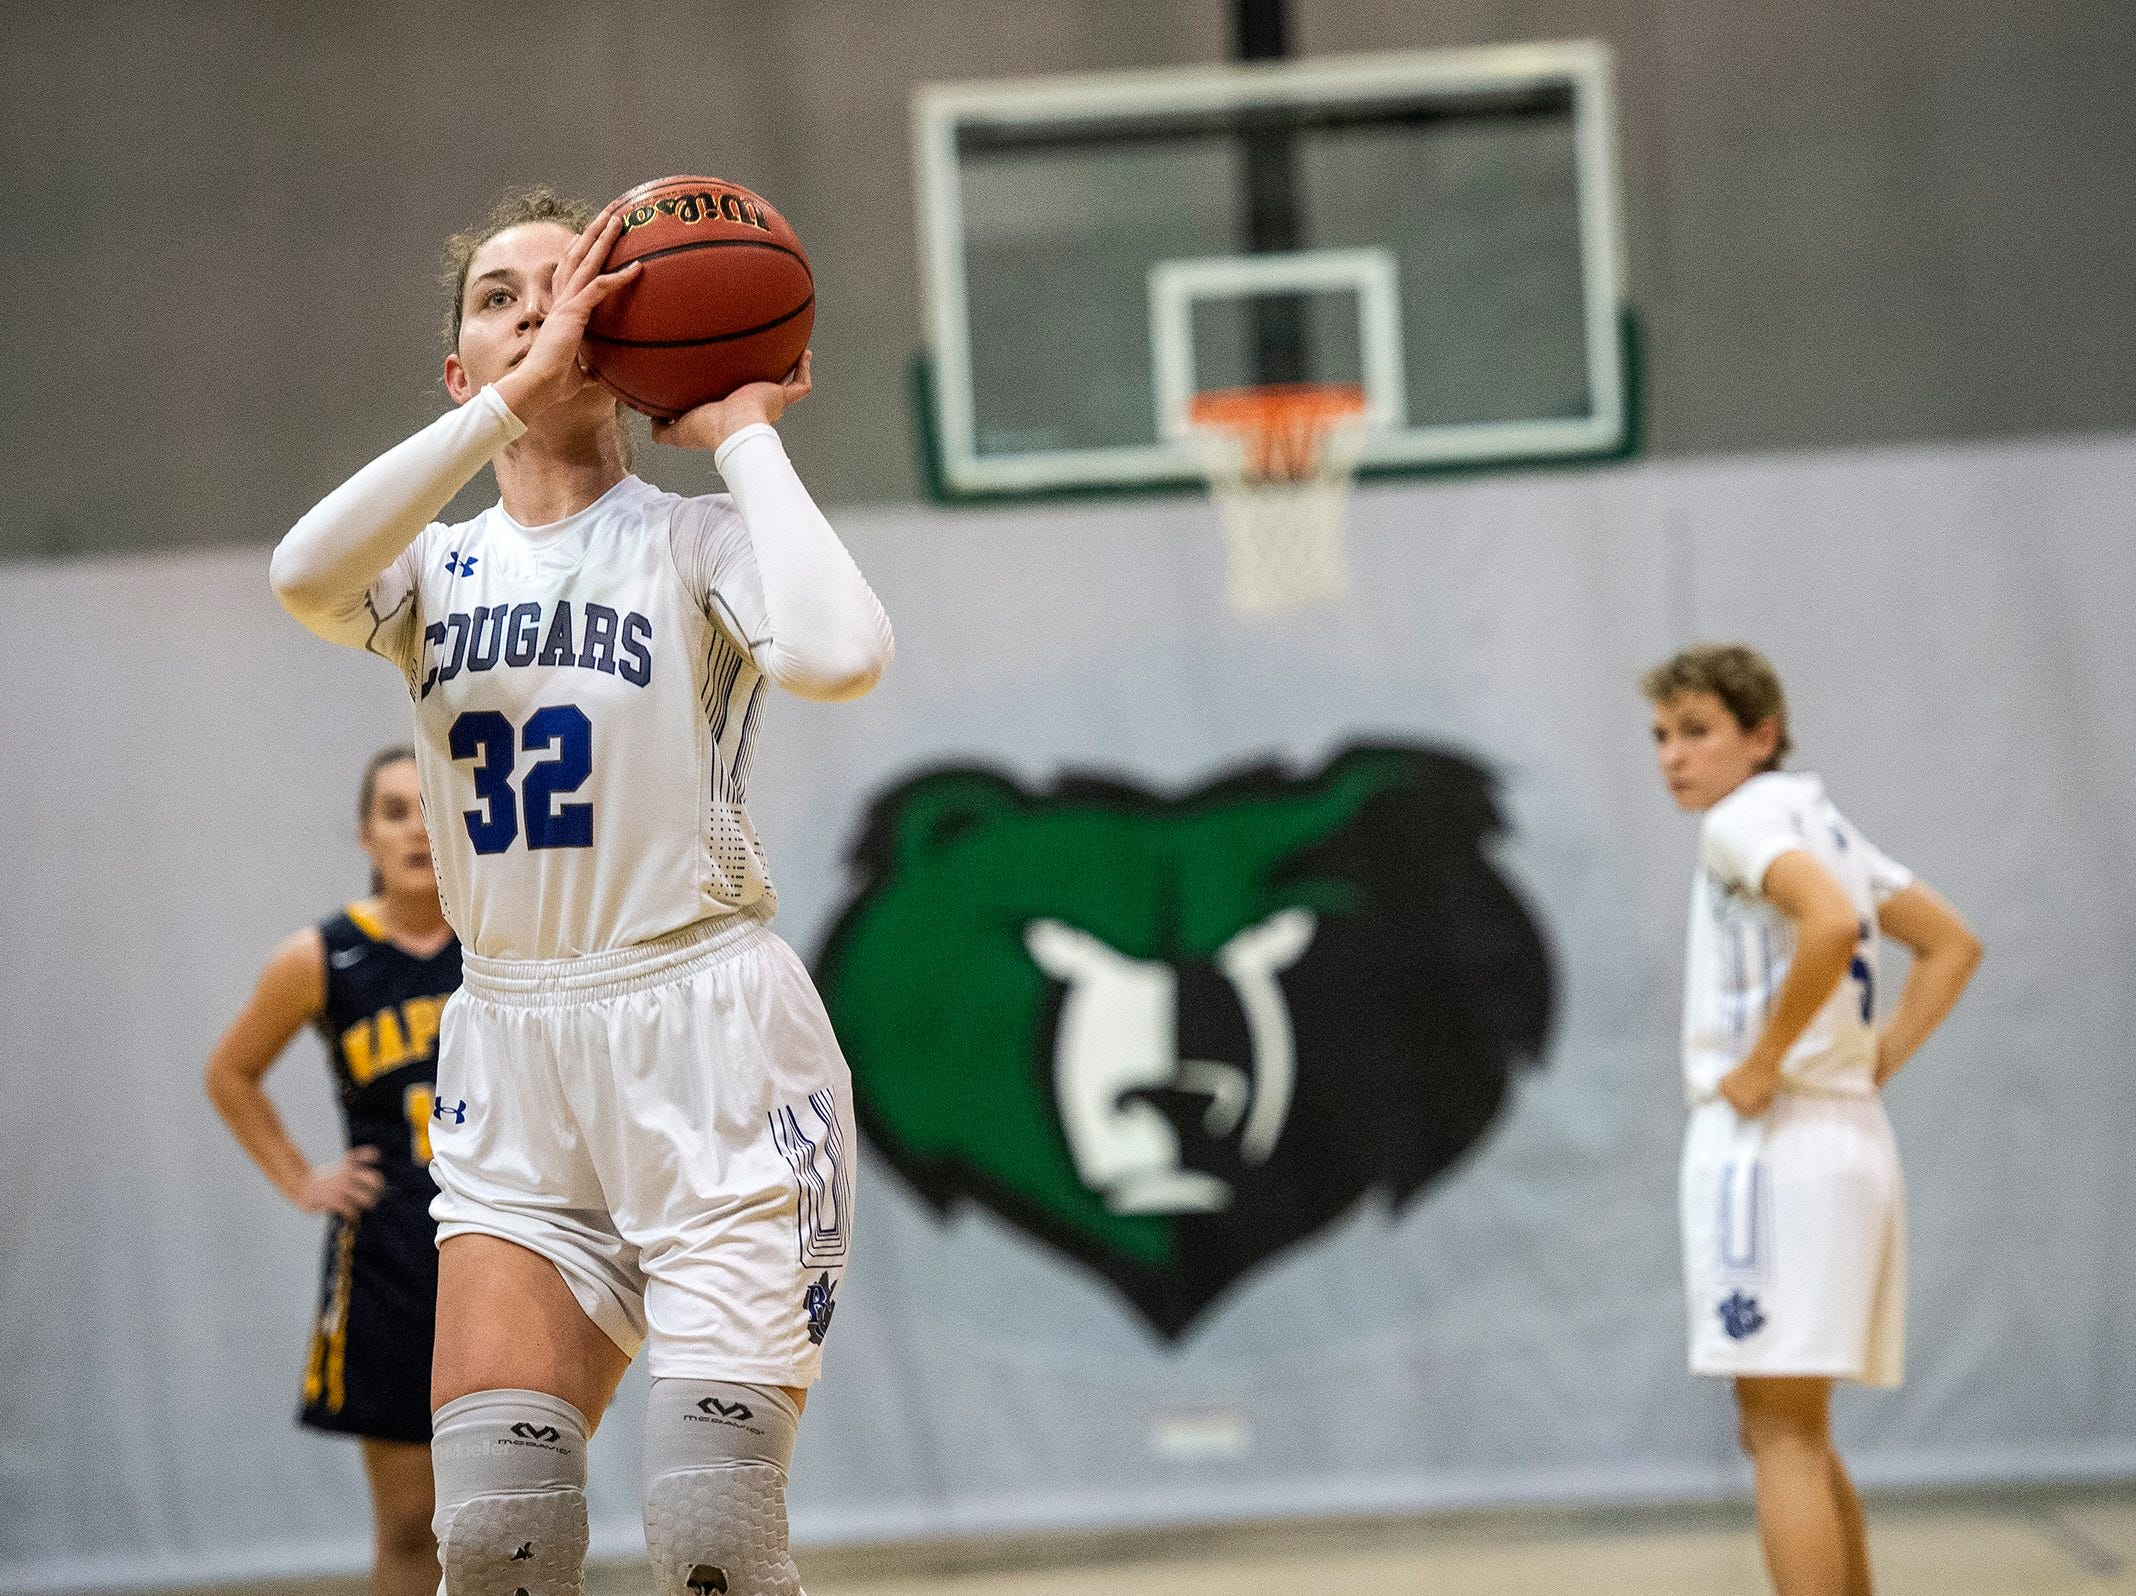 Barron Collier's Halie Egan lines up a free throw during the Class 7A-District 12 Championship against Naples High School in Naples, Fla., on Friday, Feb. 8, 2019.